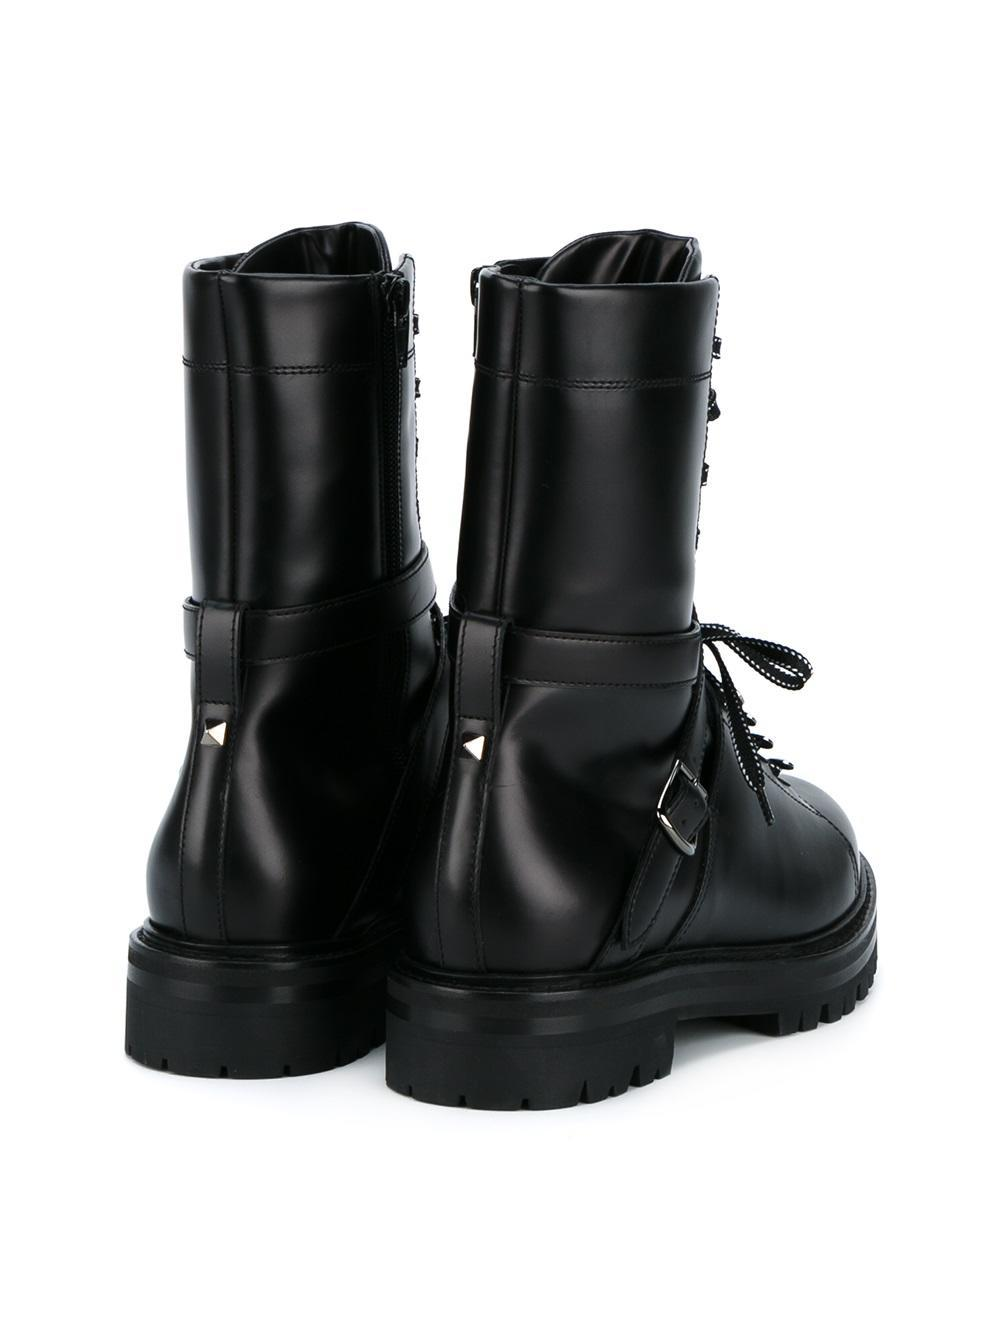 3a3cf781d89d VALENTINO Nylon Rockstud Snow Boots S 35-37 White 105015. Valentino Rockstud  Leather Combat Boot for Men